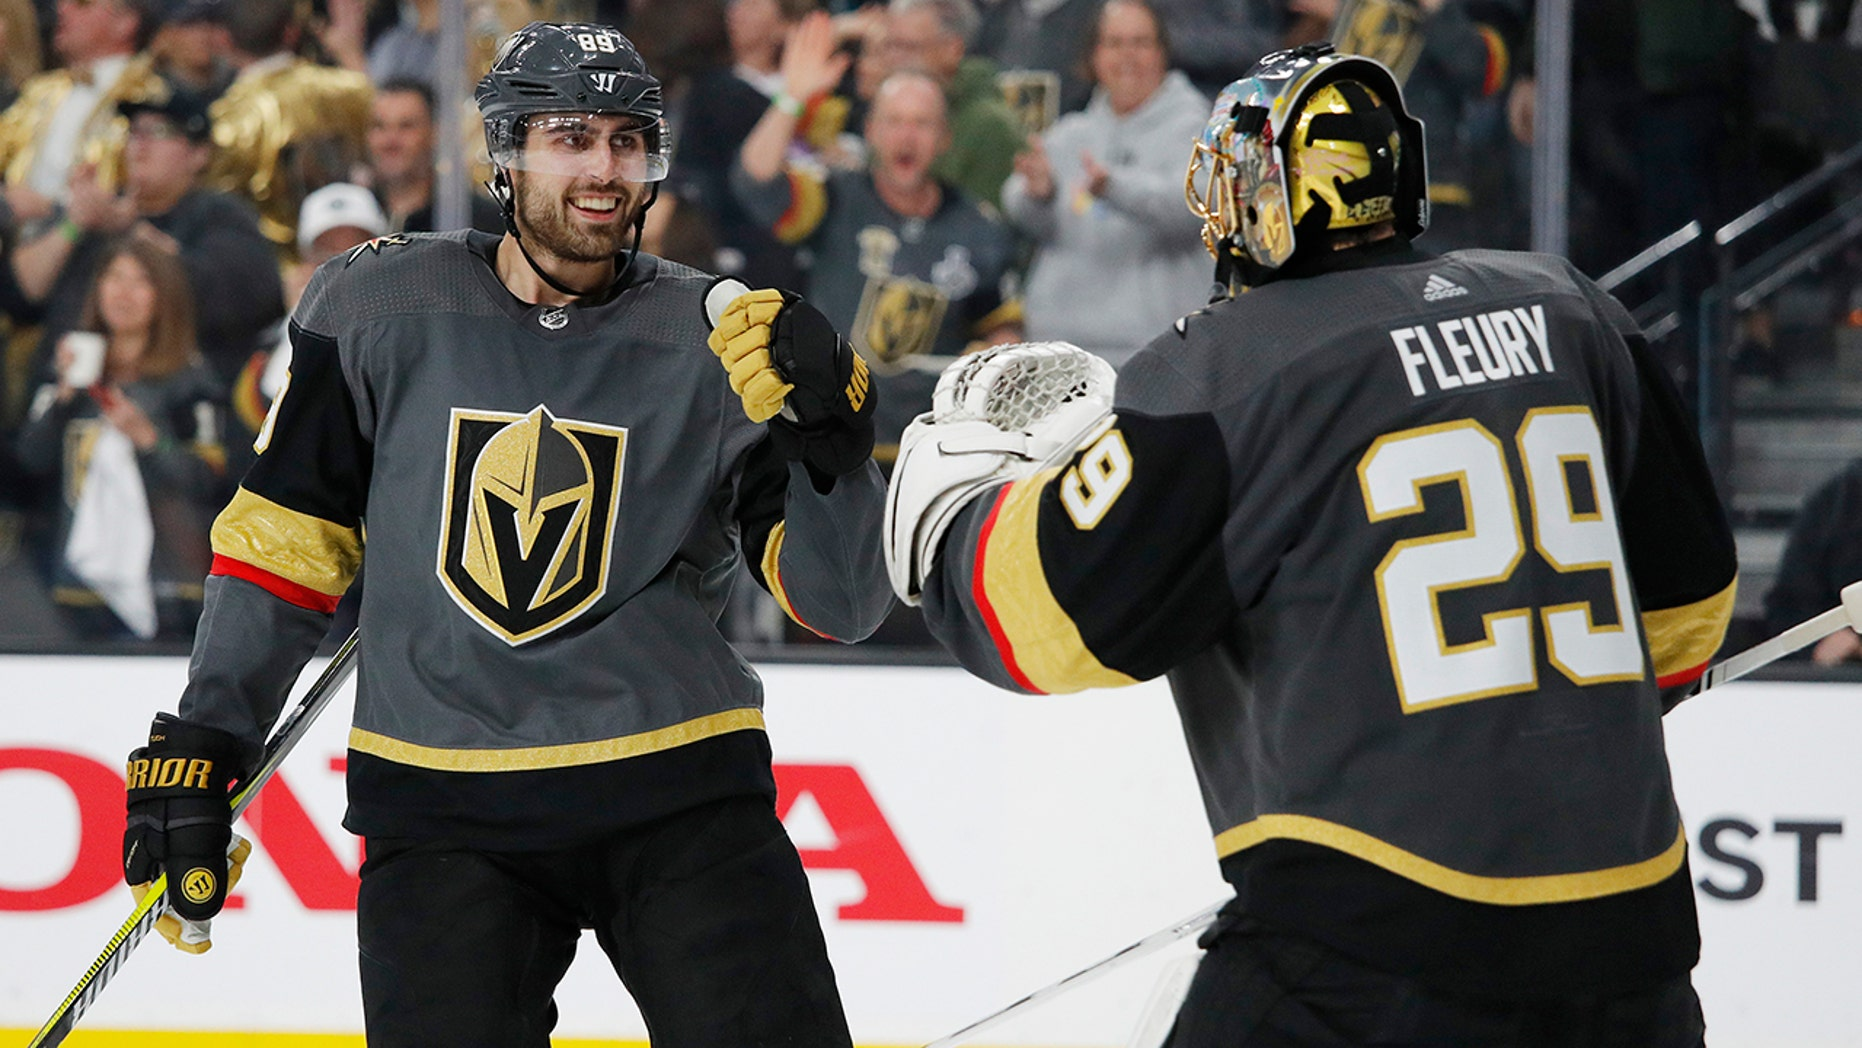 Vegas Golden Knights right wing Alex Tuch, left, celebrates with goalie Marc-Andre Fleury after scoring against the San Jose Sharks during the third period of Game 4 of a first-round NHL hockey playoff series Tuesday, April 16, 2019, in Las Vegas. (AP Photo/John Locher)